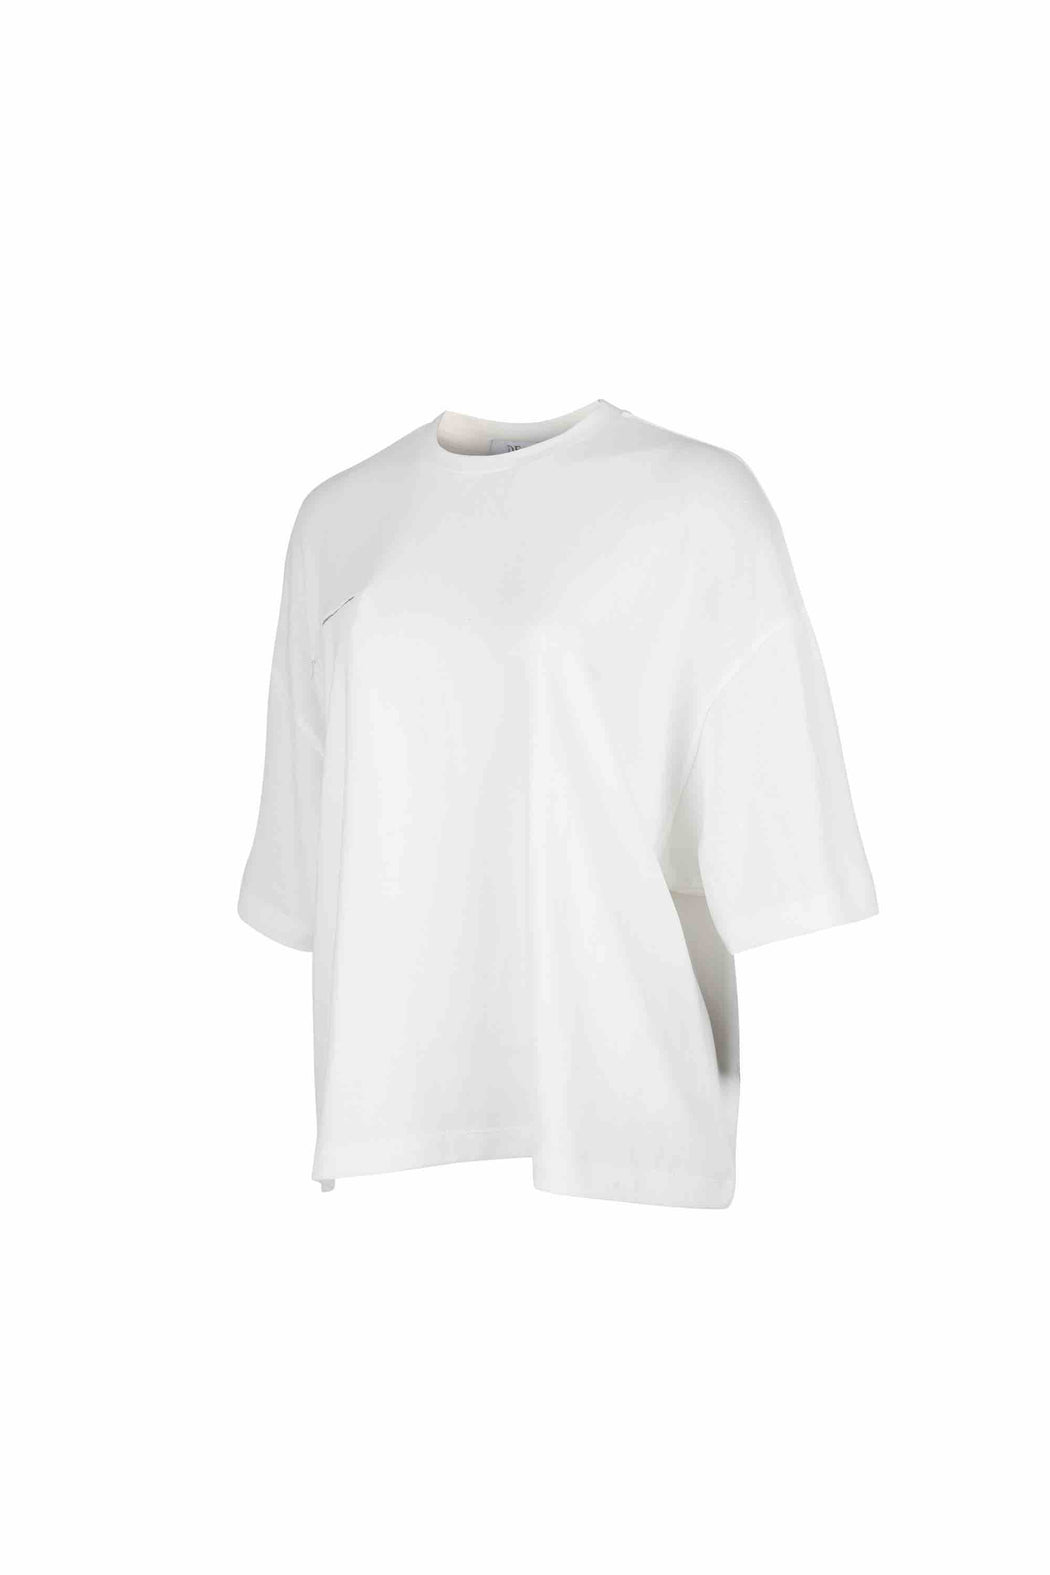 Side view of Women Bead Trim Pocket T-Shirt made with Organic Cotton in White